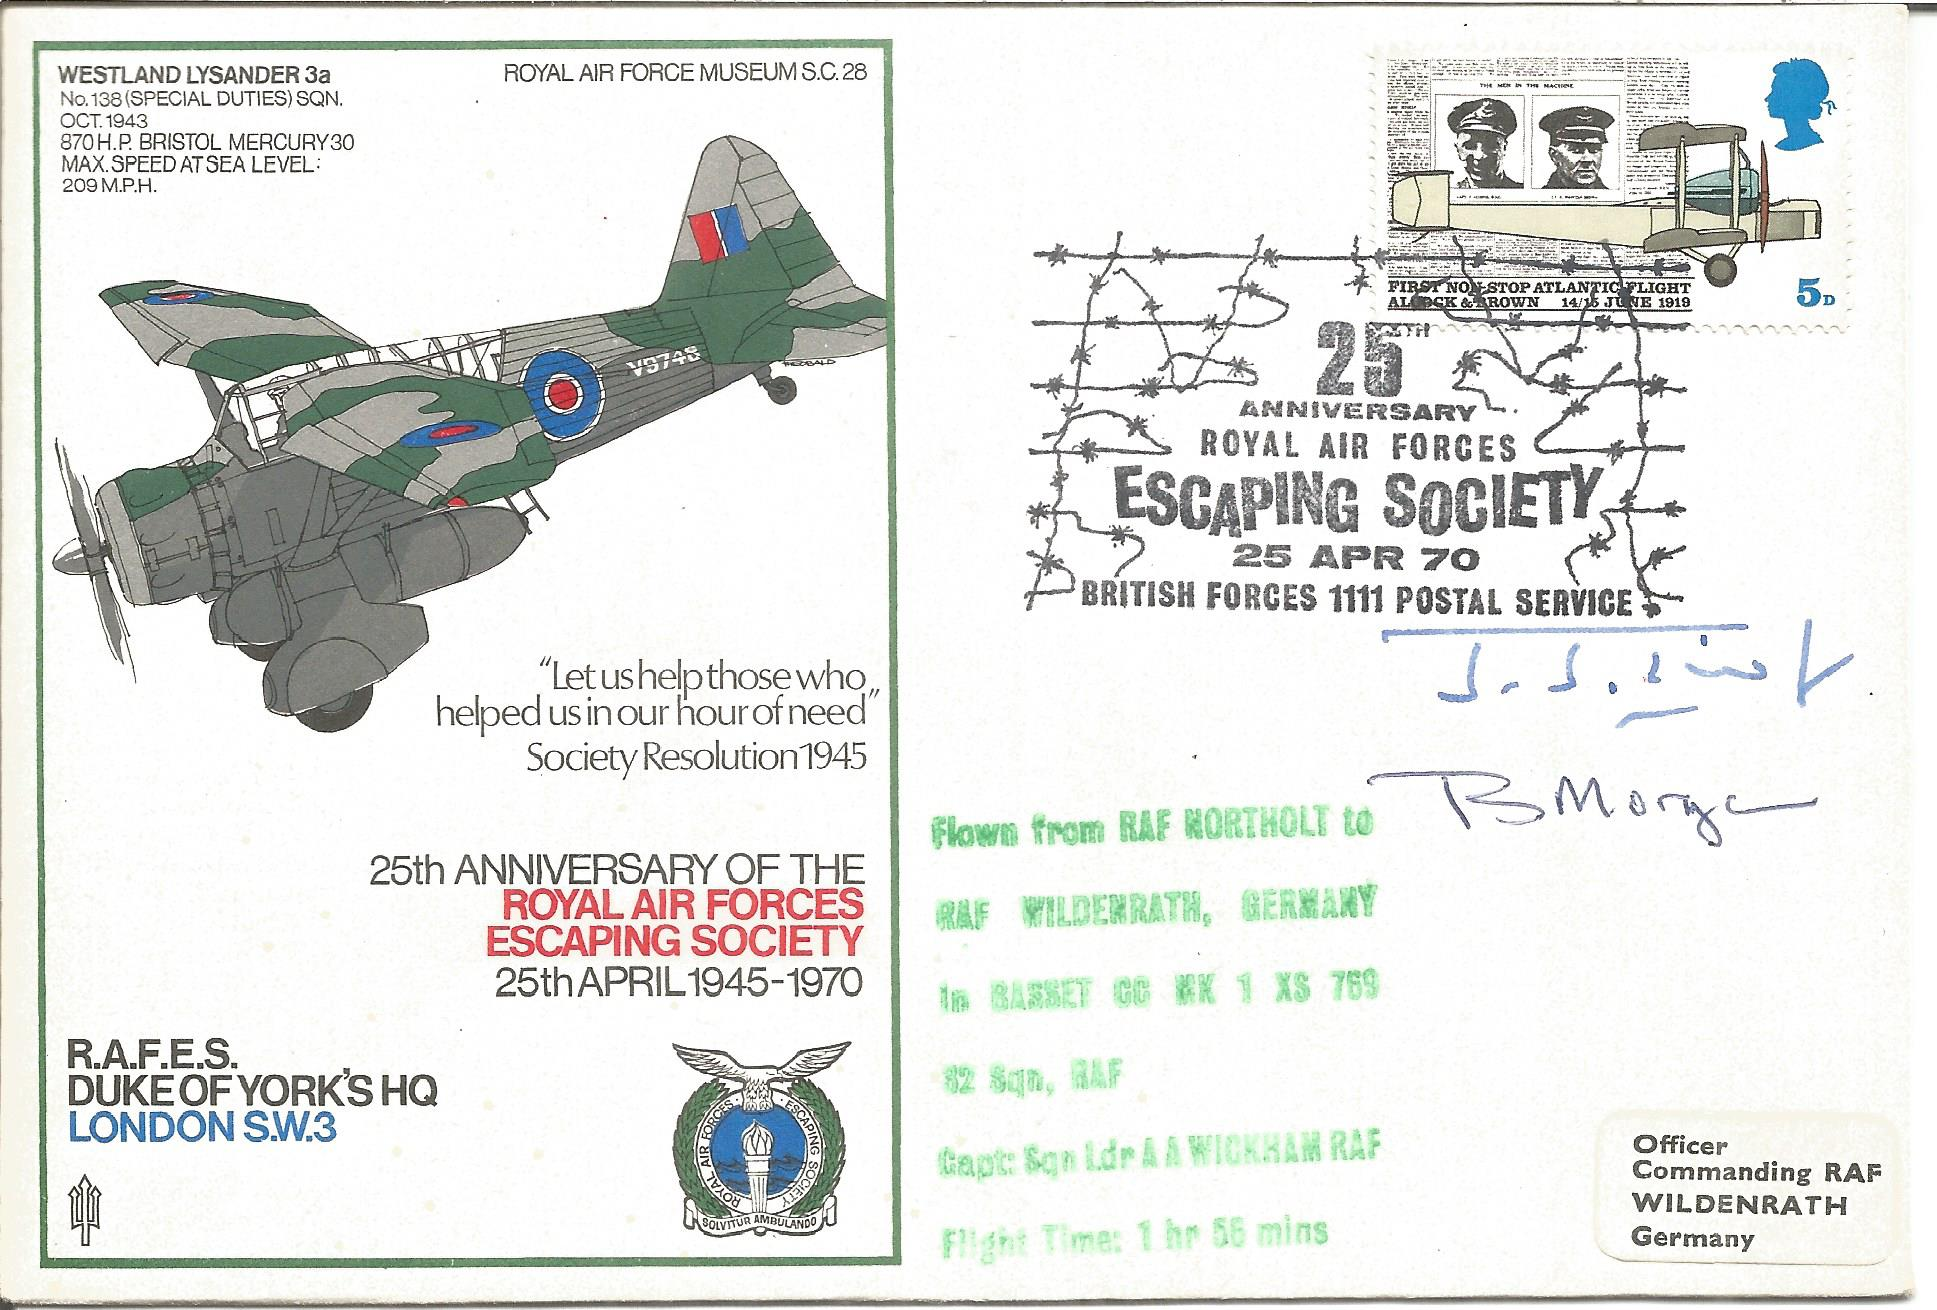 B. Morgan and J.J. Twist signed 25th Anniversary of the Royal Air Forces Escaping Society 25th April